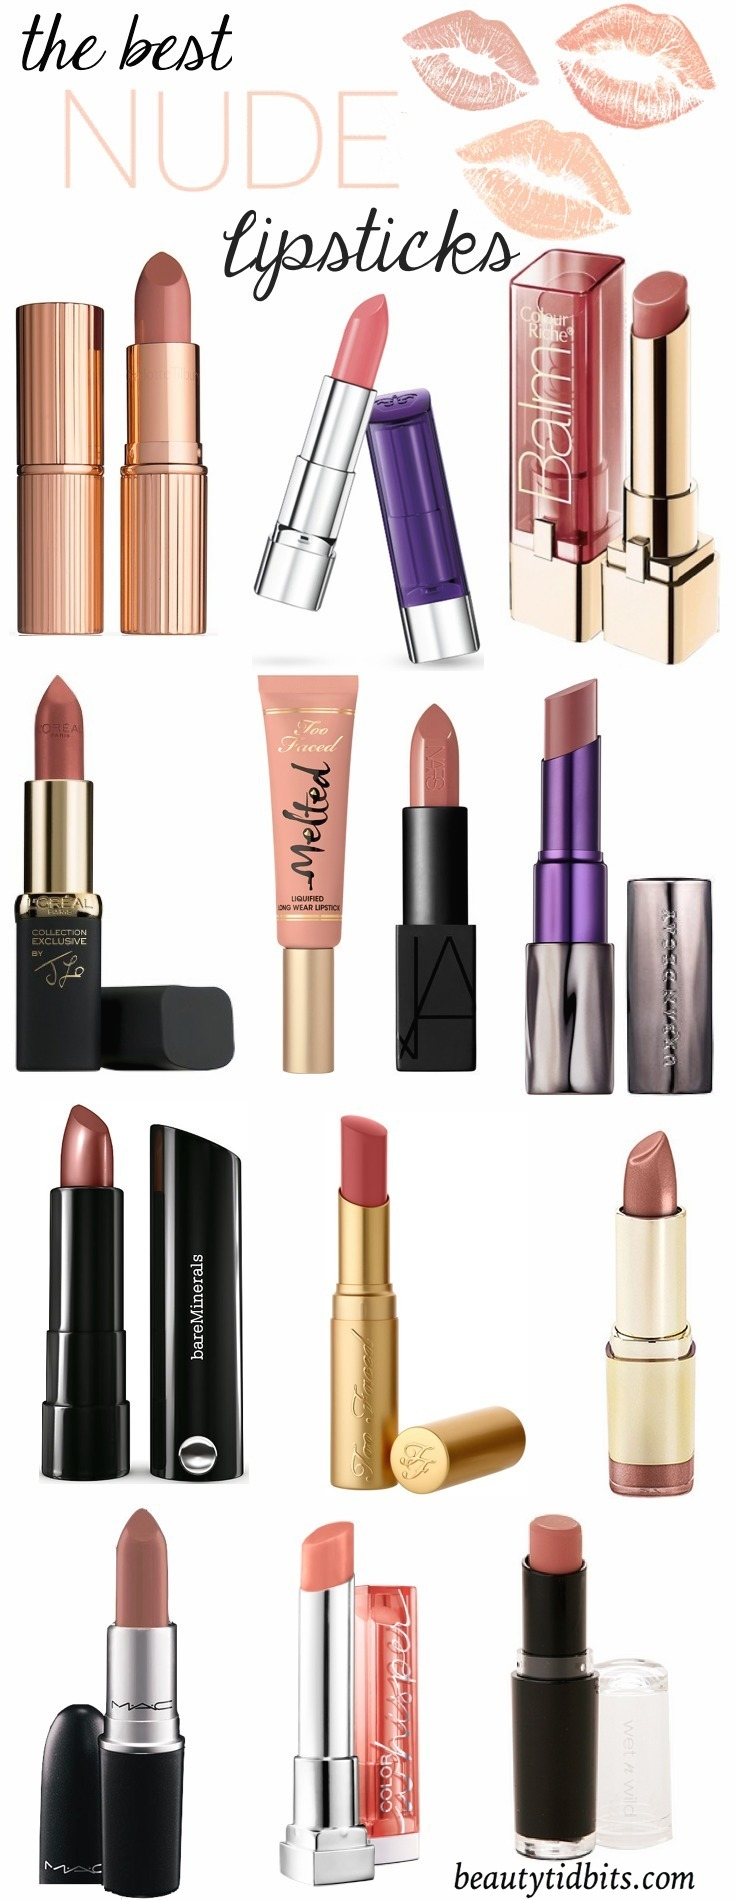 Looking for the perfect nude lippie this spring? Here are some of the best nude lipsticks for every skin tone!